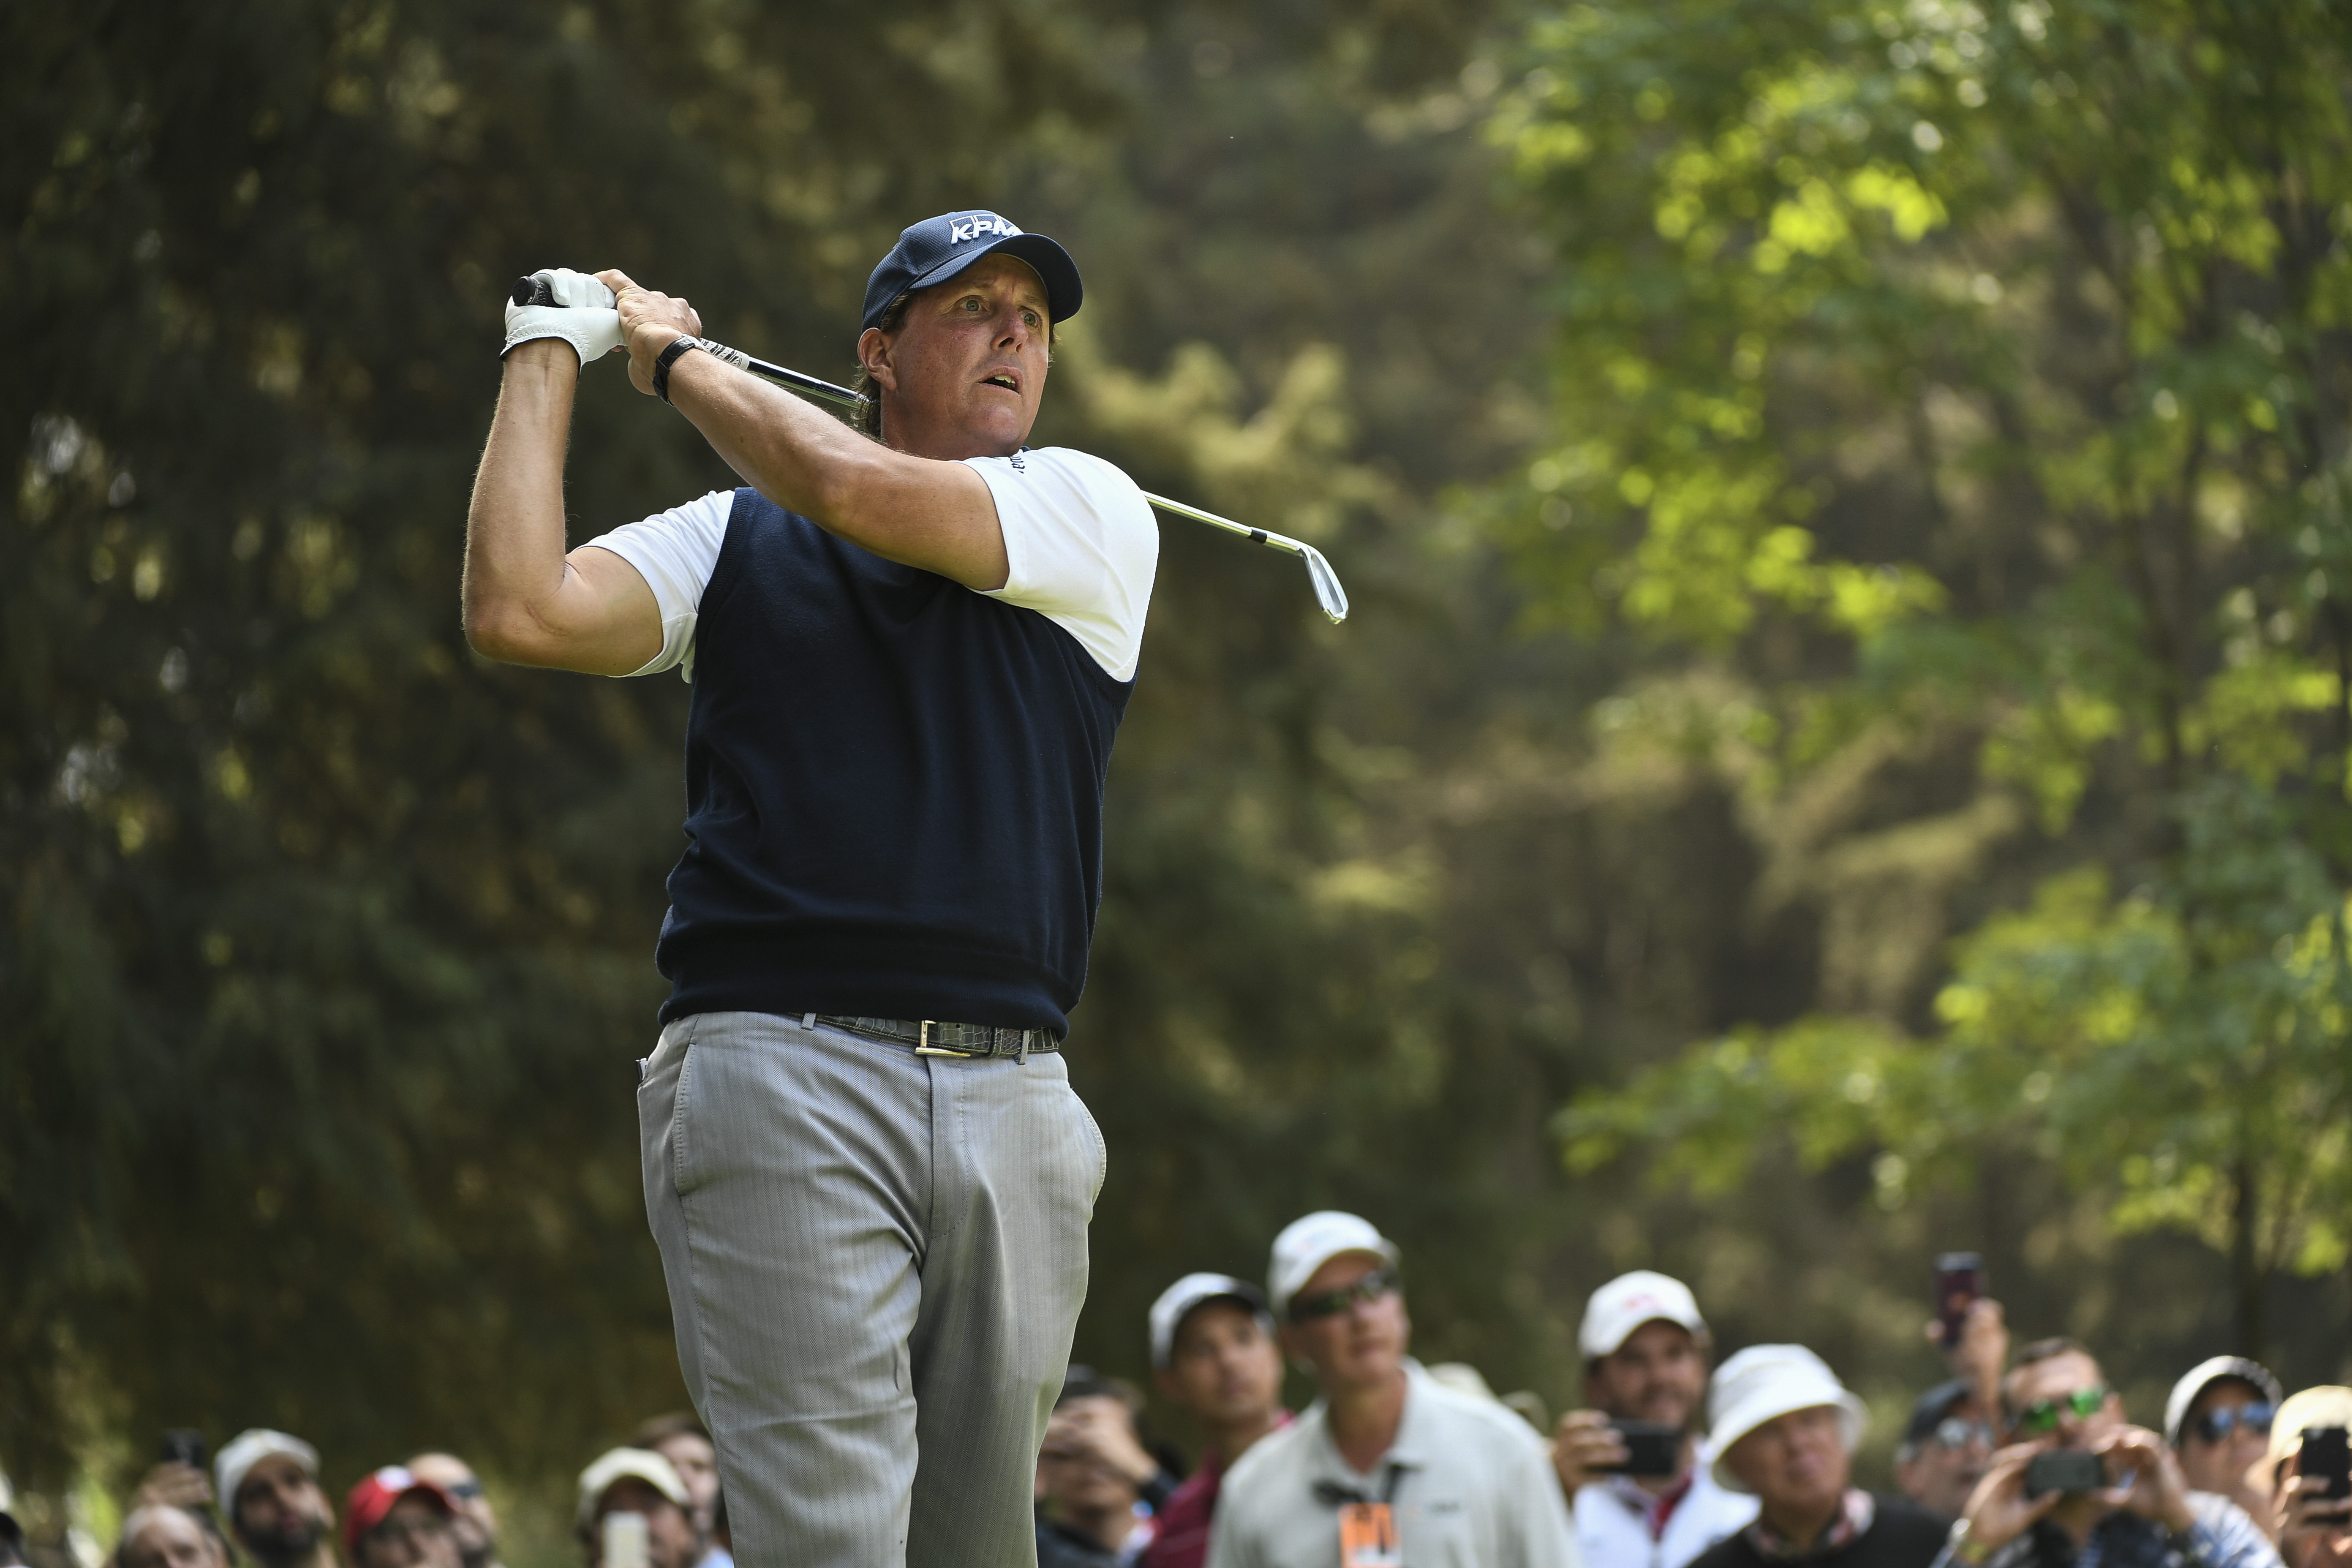 Lefty may be the best golfer at his age until he hangs his spikes up. In 2014 and '15, it seemed like he might quietly fade away, but he rallied to make the 2016 Ryder Cup team and still continues to be competitive on Tour. Mickelson somehow finished 12th on the Tour money list last year.  <b><p>Also receiving votes:</b> Jim Furyk